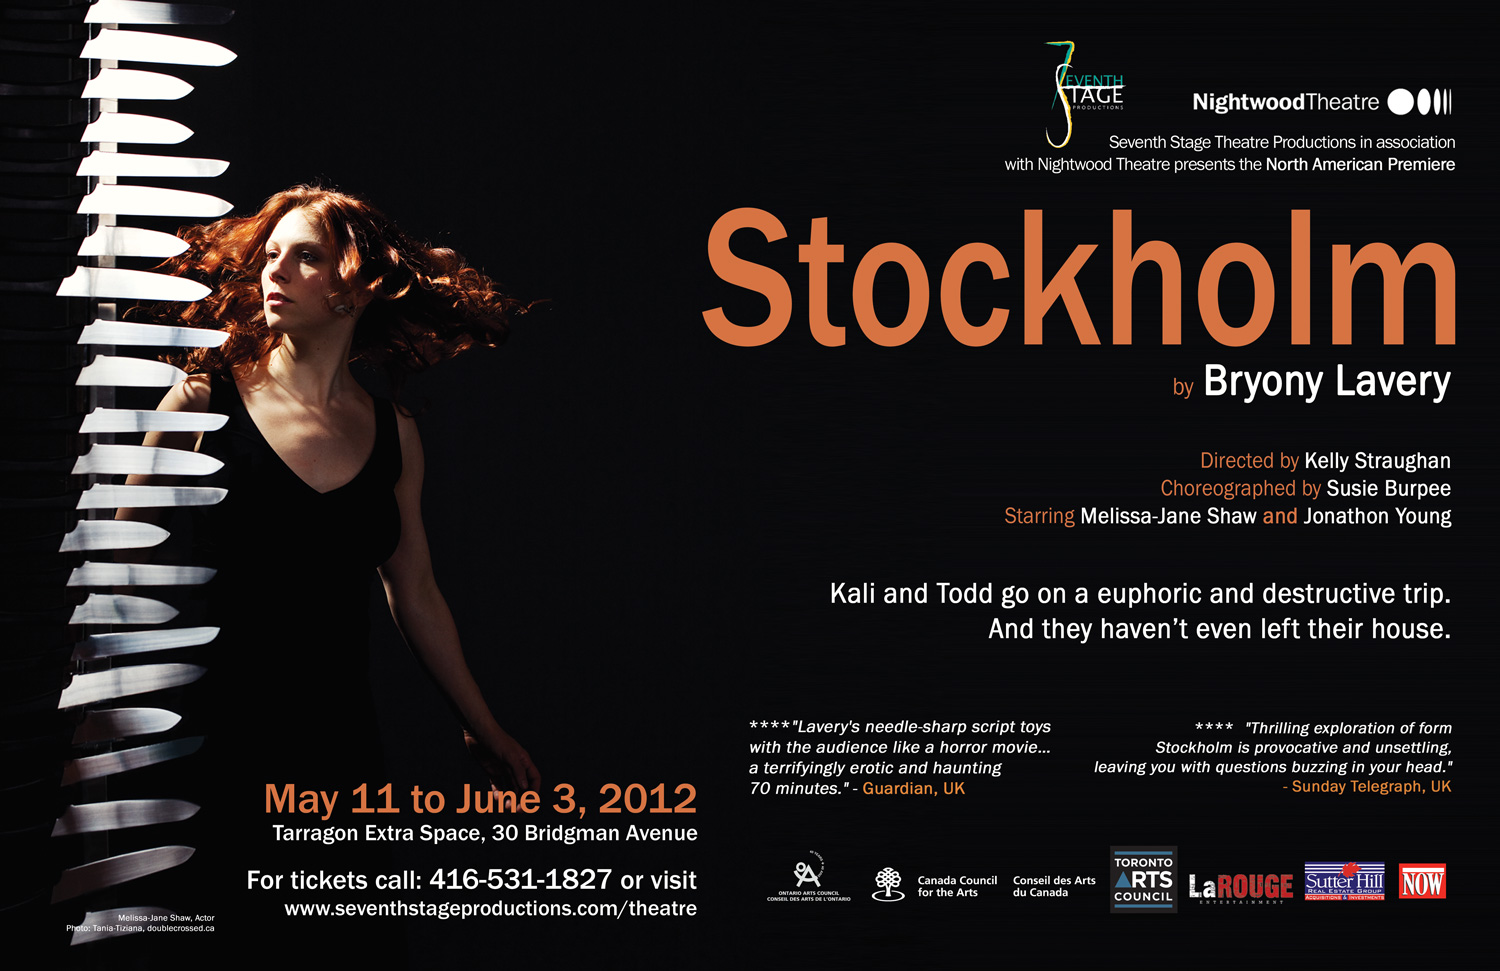 North American Premiere of  Stockholm |  Assistant Director to Kelly Straughan | Seventh Stage Productions